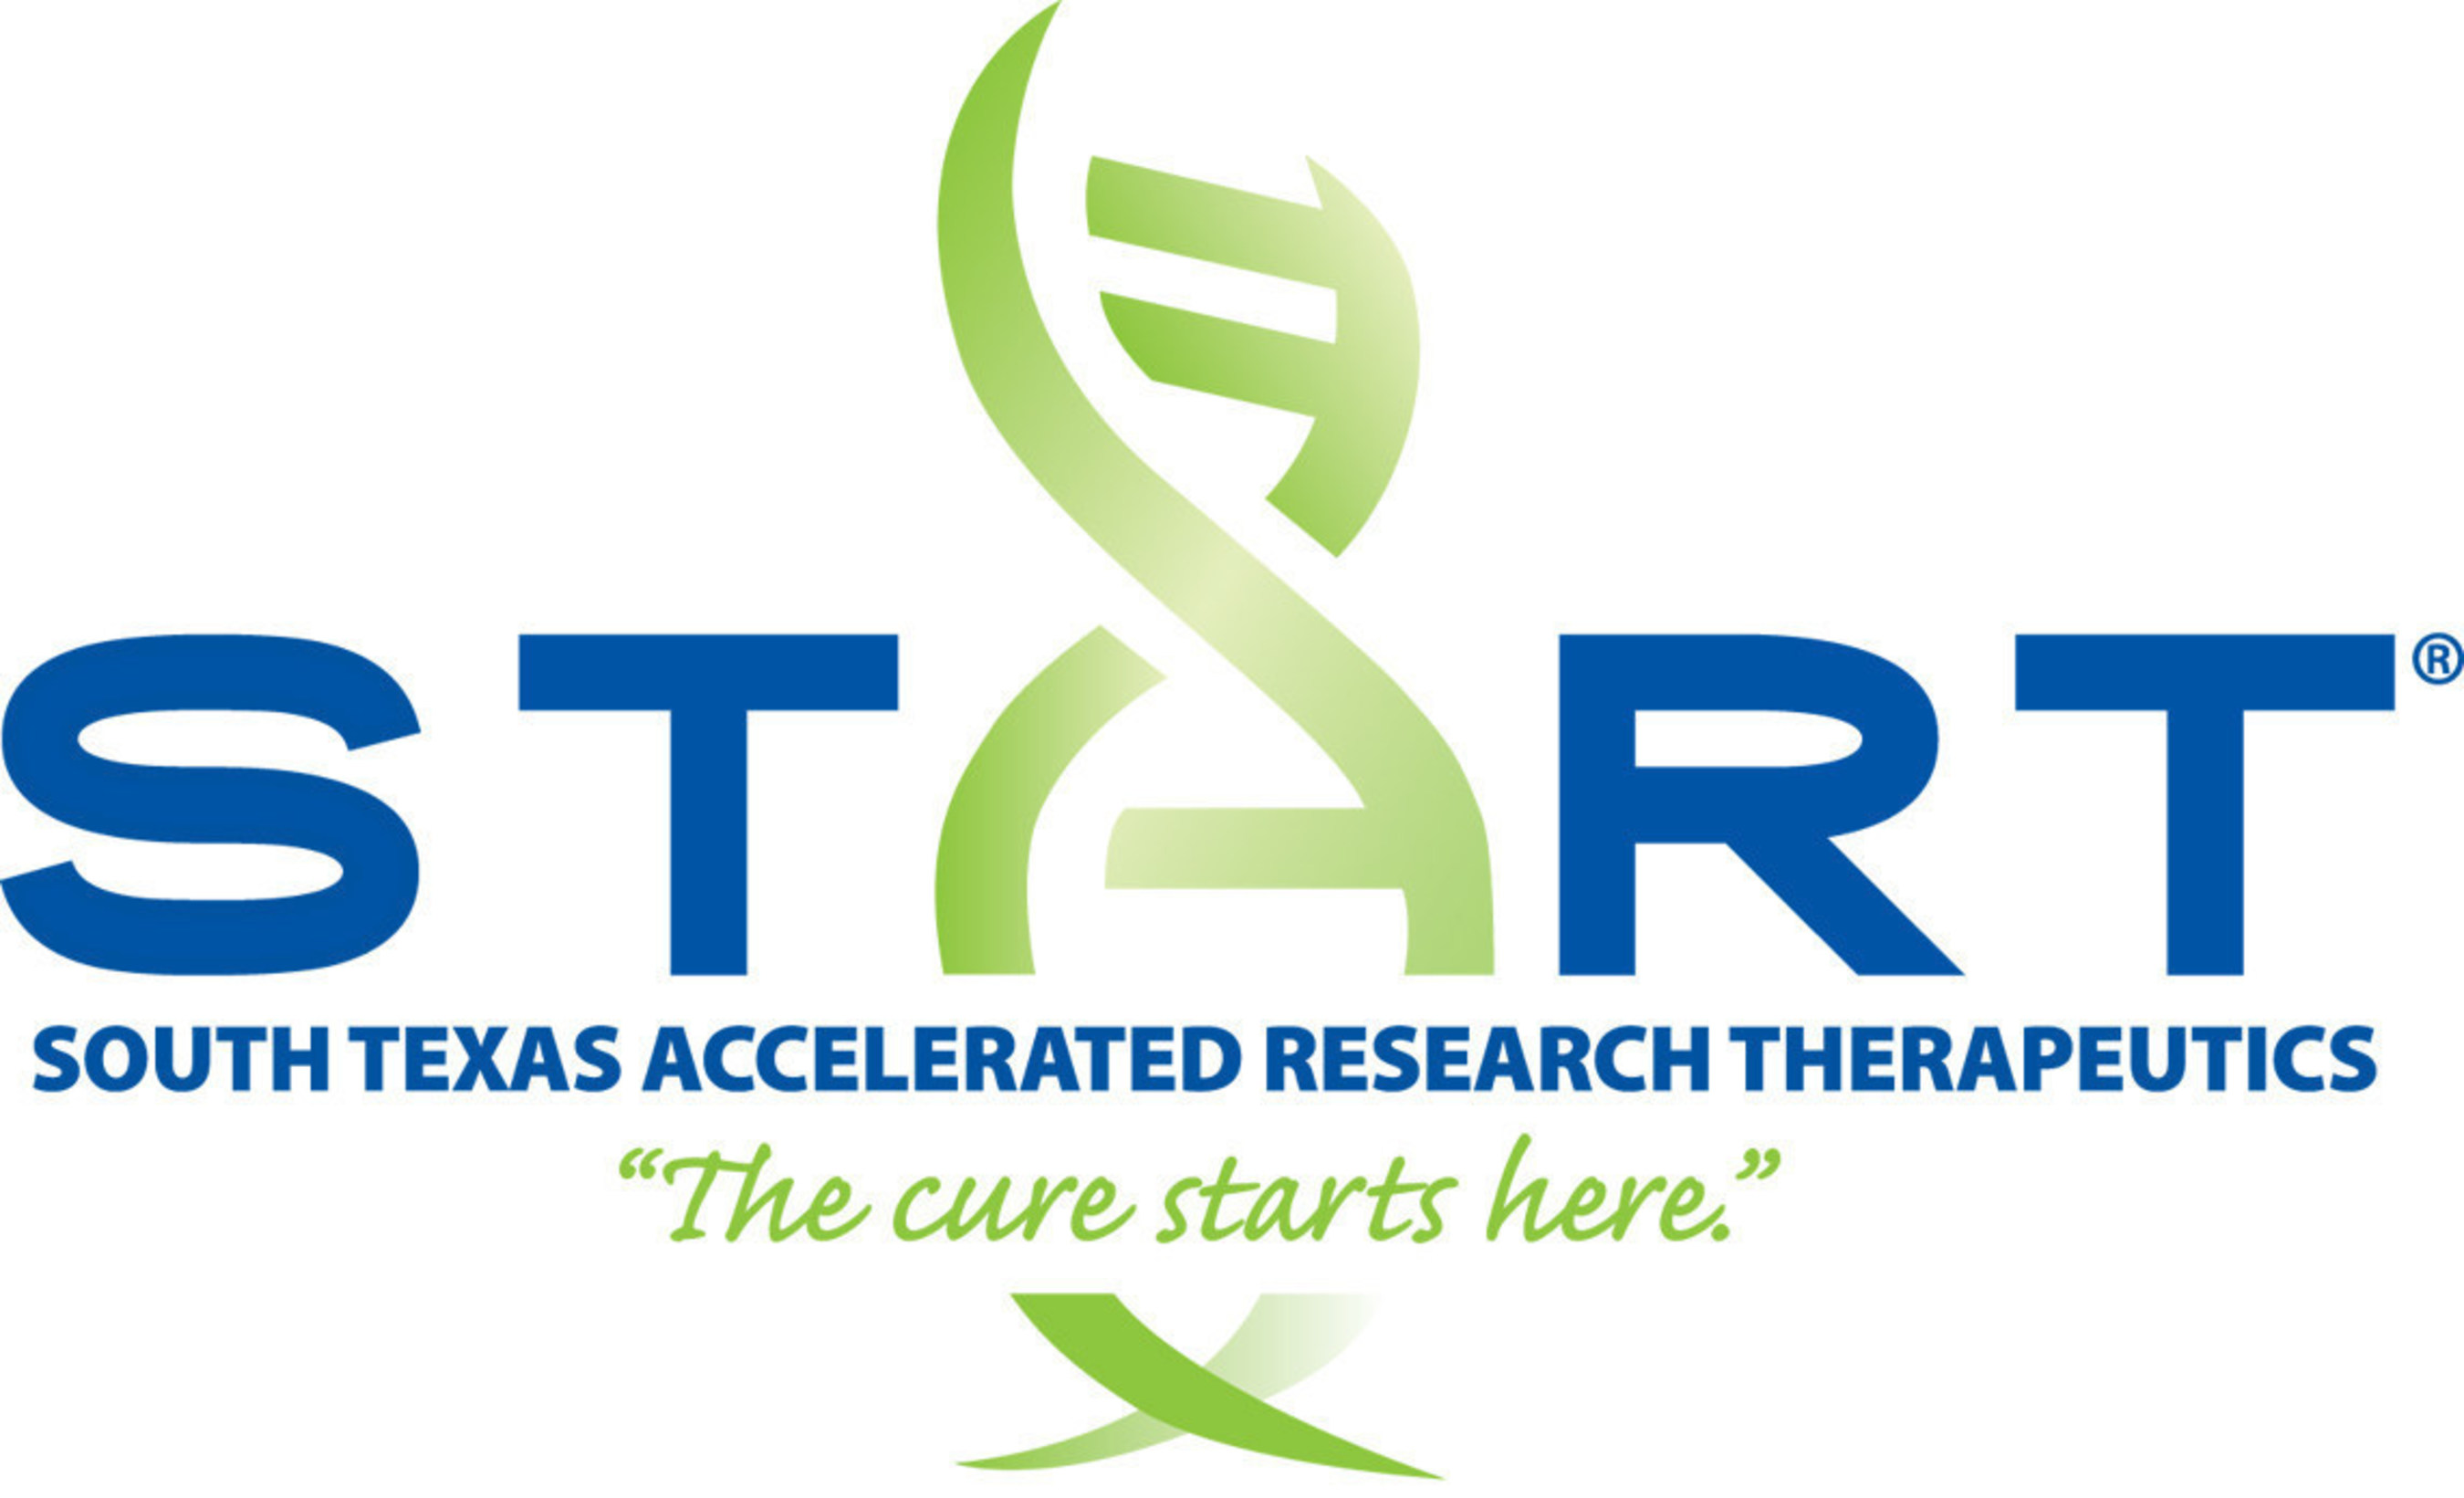 South Texas Accelerated Research Therapeutics